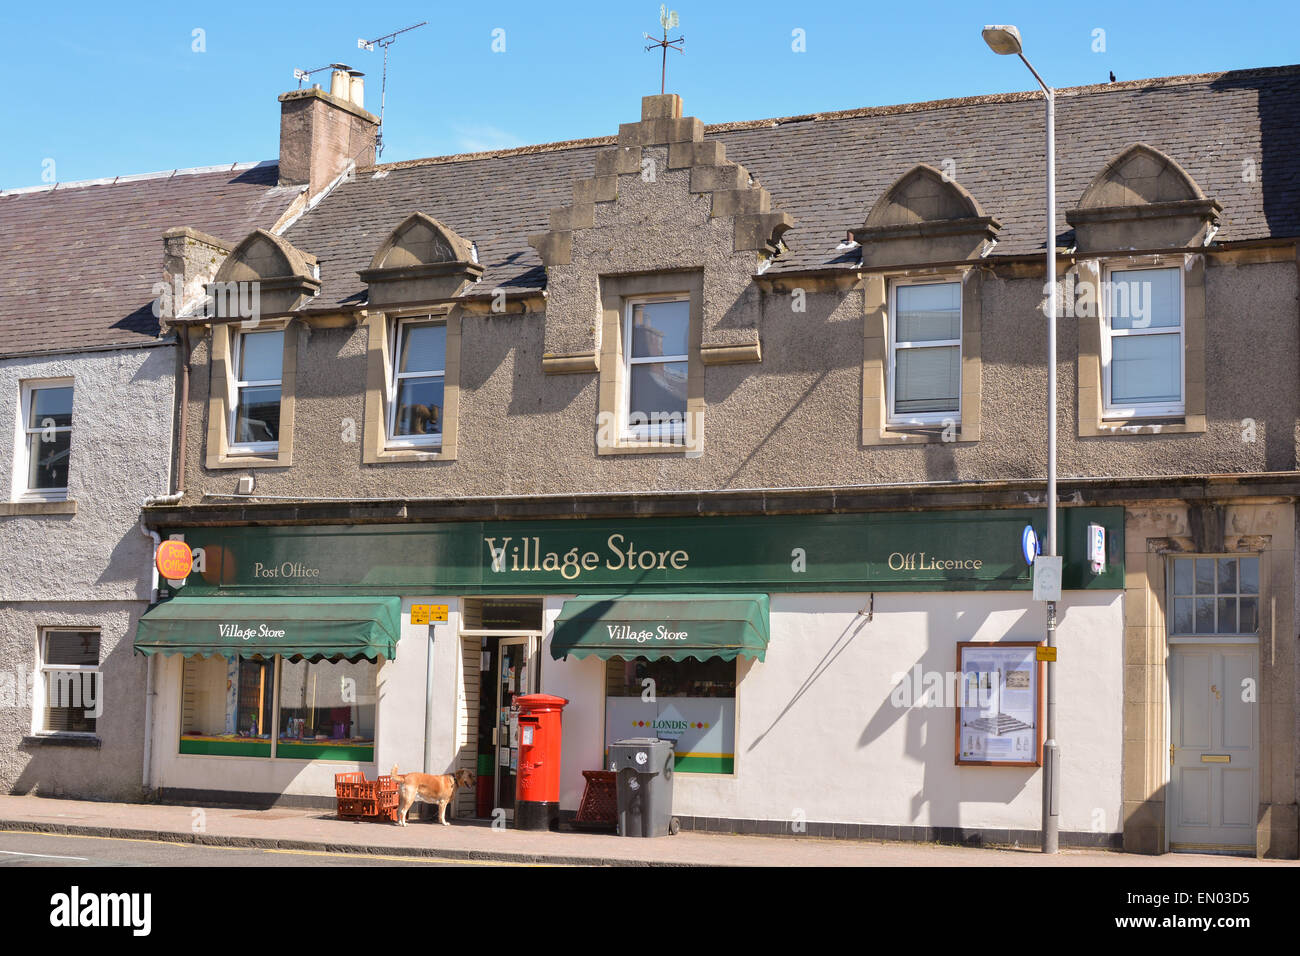 DOUNE, STIRLING, Scotland, UK - 23 avril 2015 : Magasin du Village, hors licence et bureau de poste dans le Photo Stock